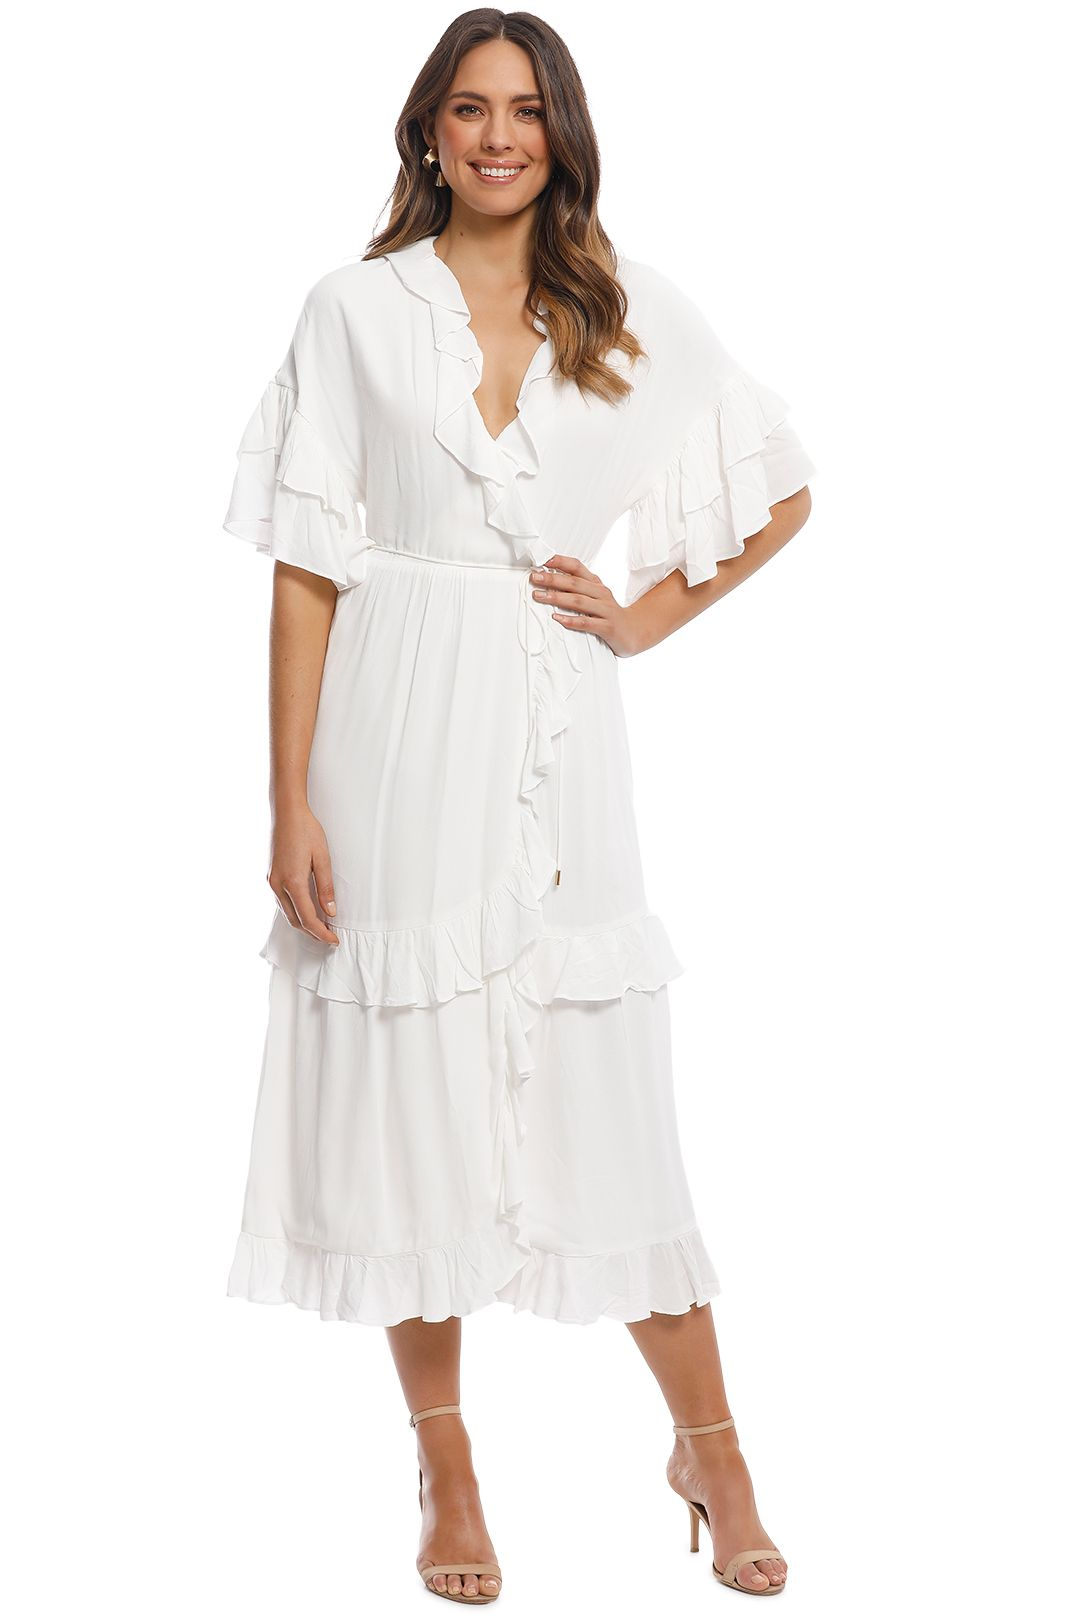 Elliatt - Vino Dress - White - Front